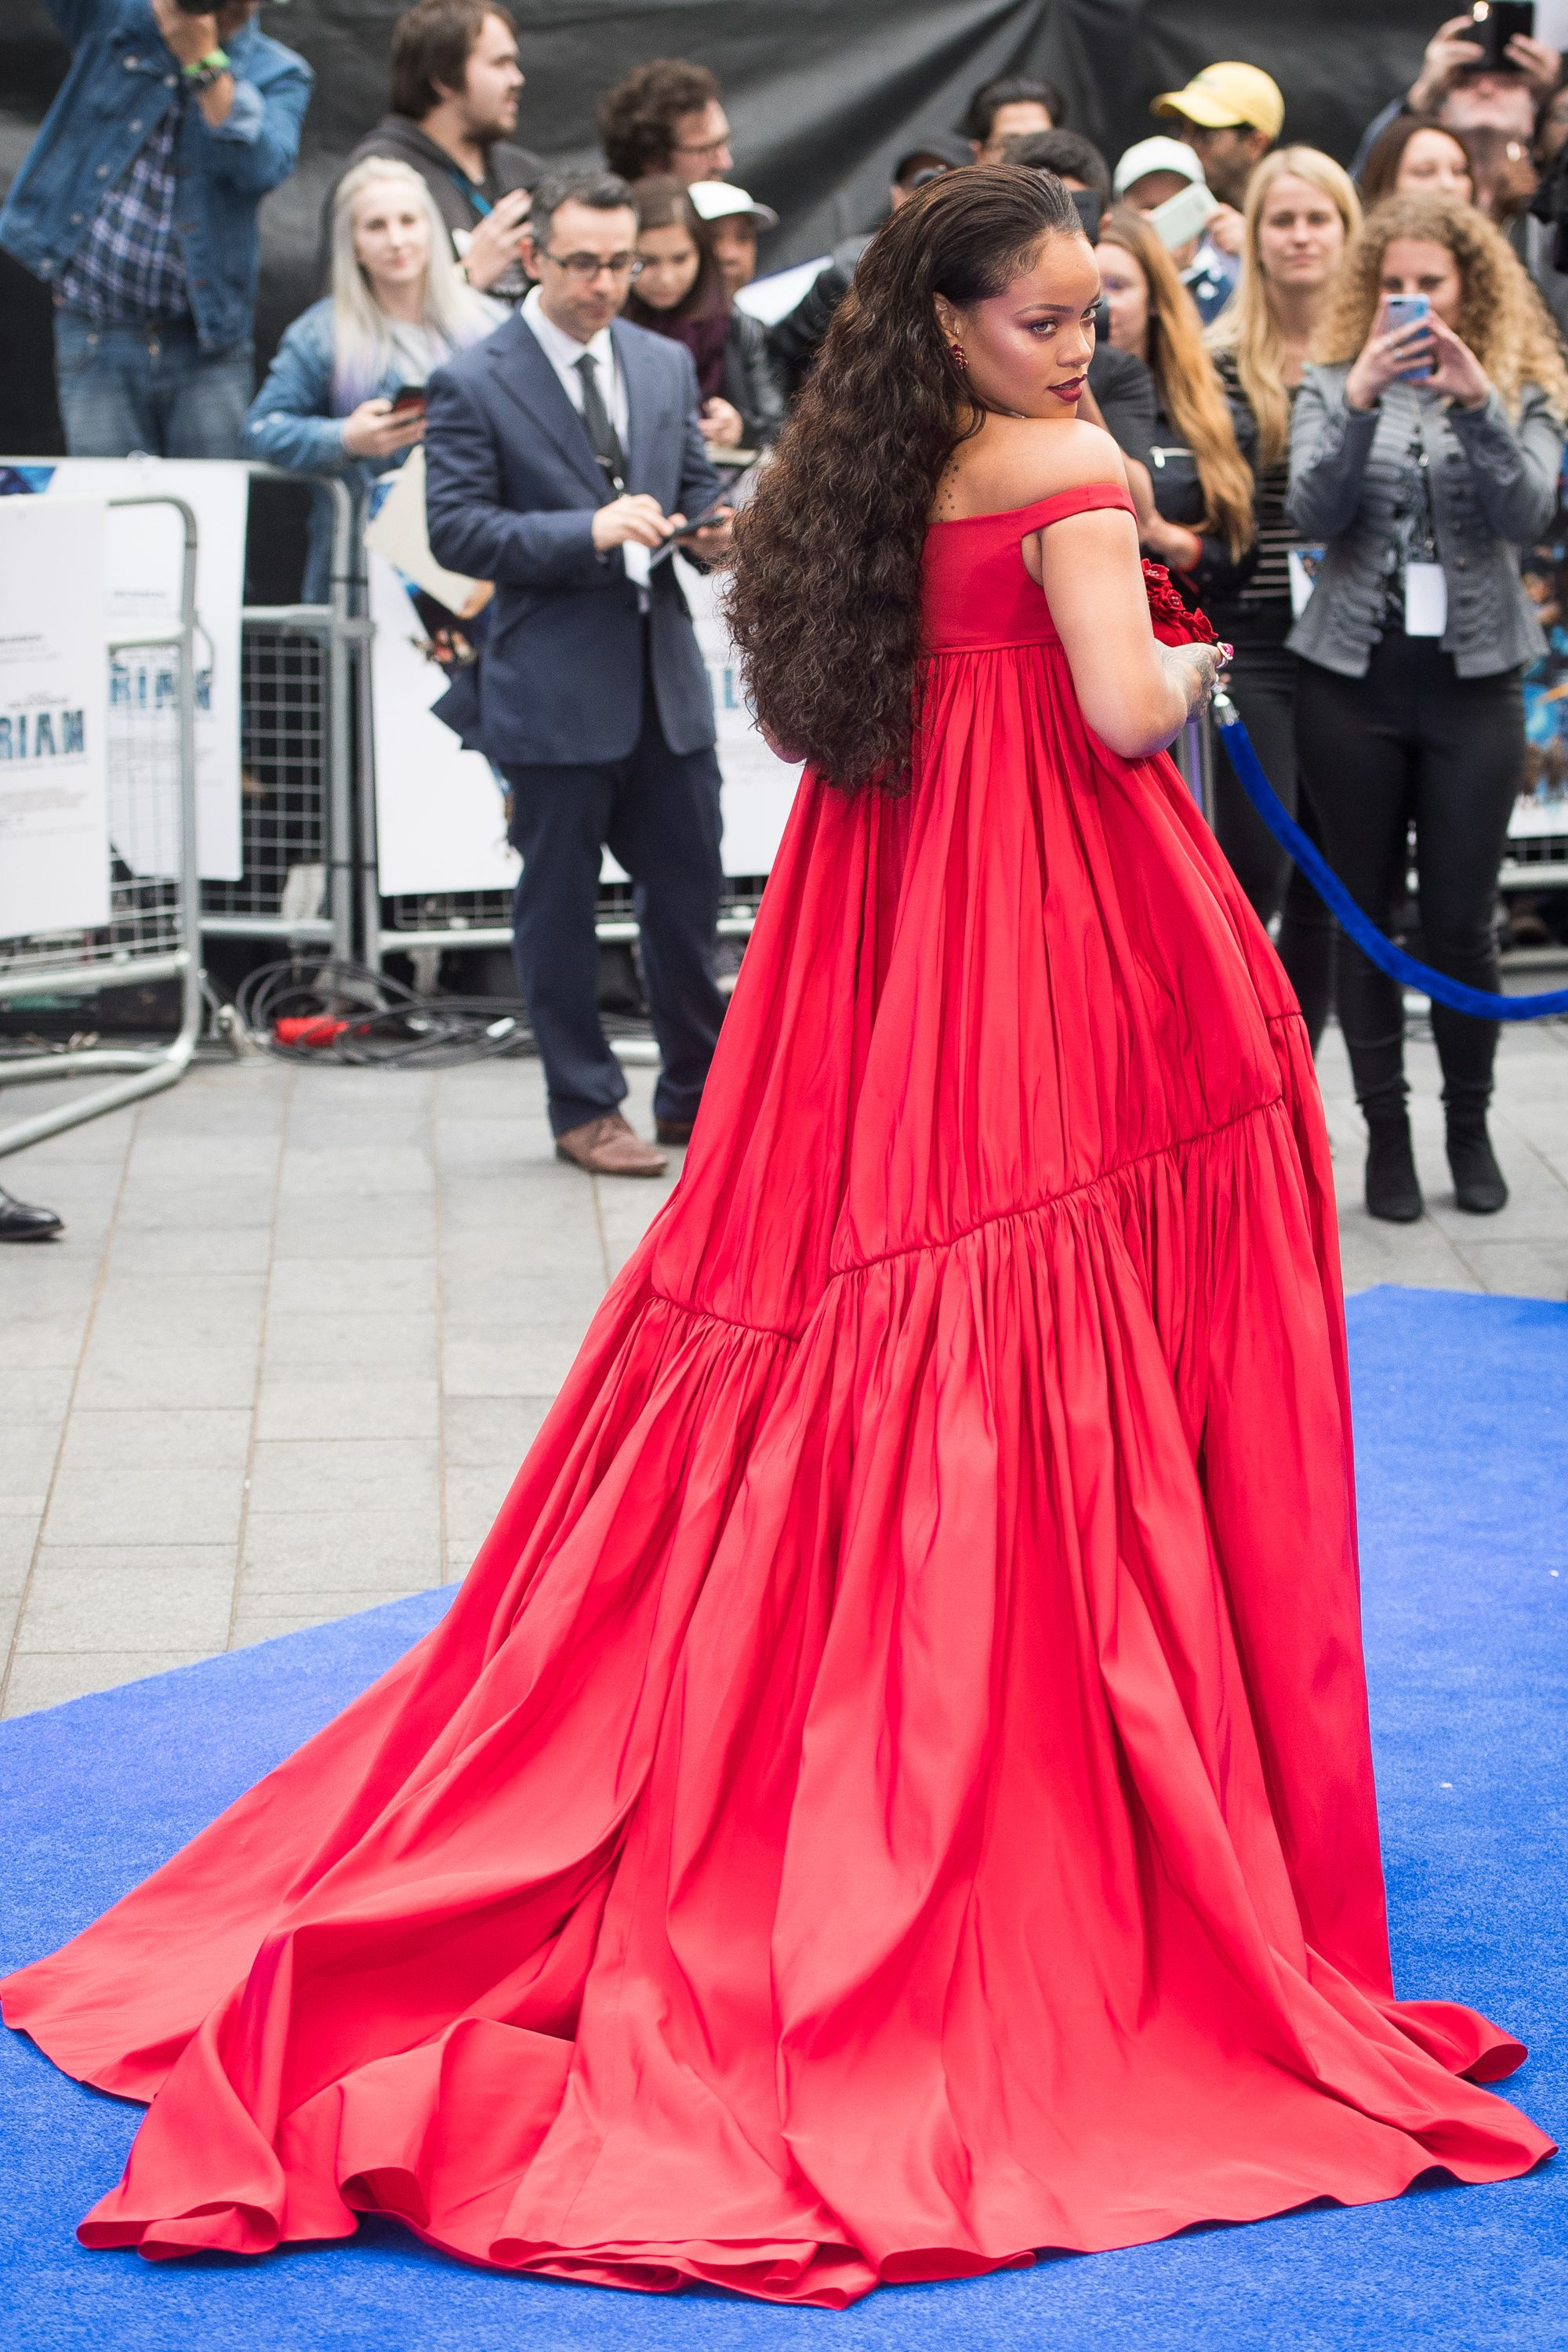 Rihanna looks like a regency queen in her giant scarlet gown